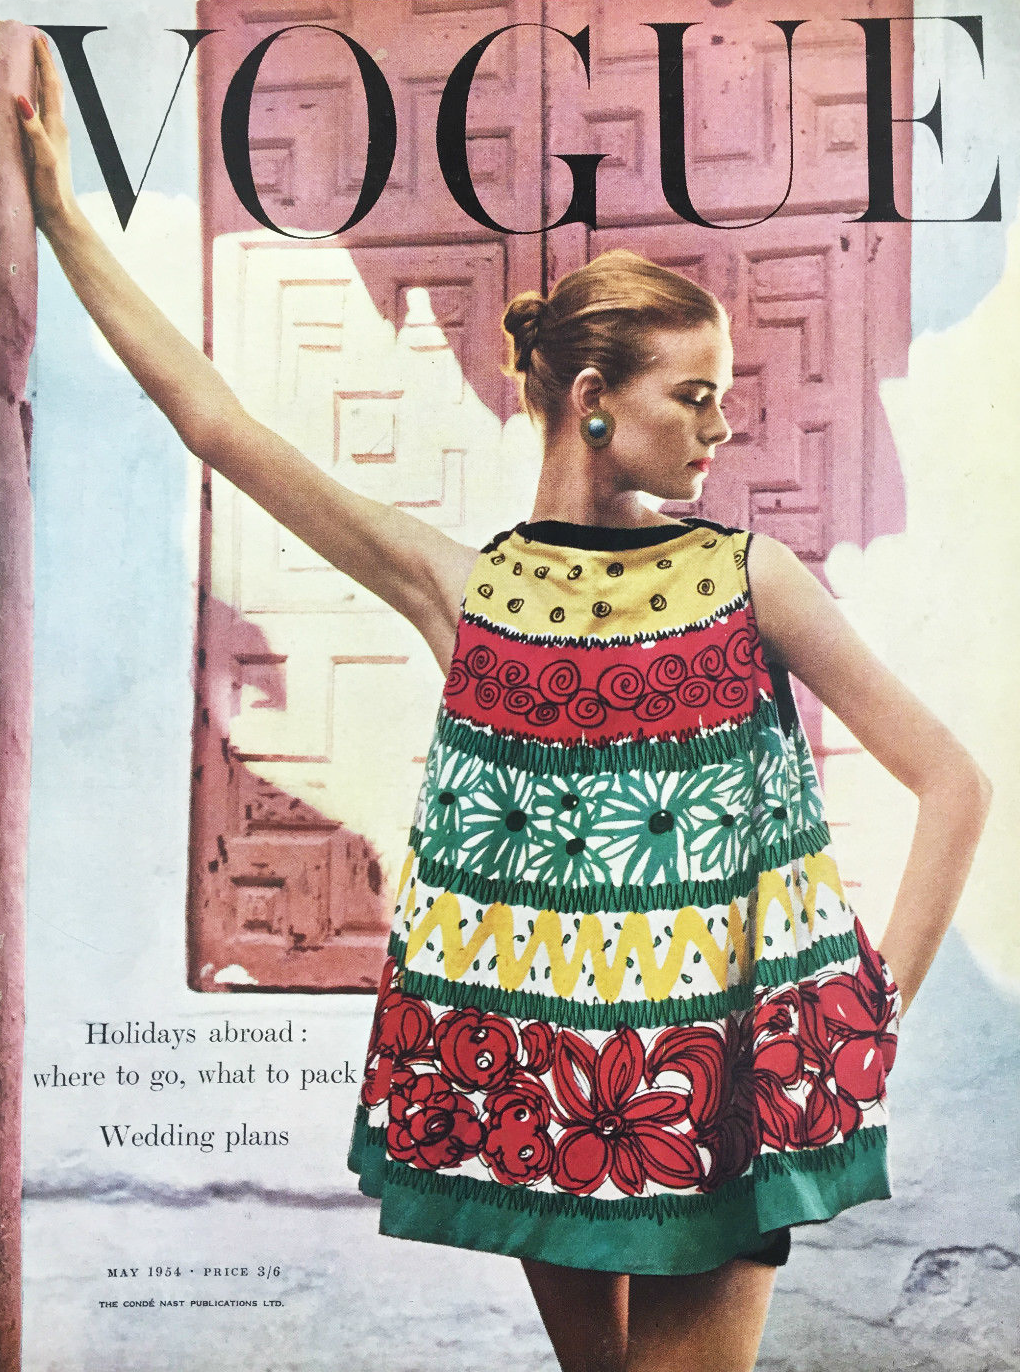 Vogue May 1954, UK, British, cover, half circle blouse, summer